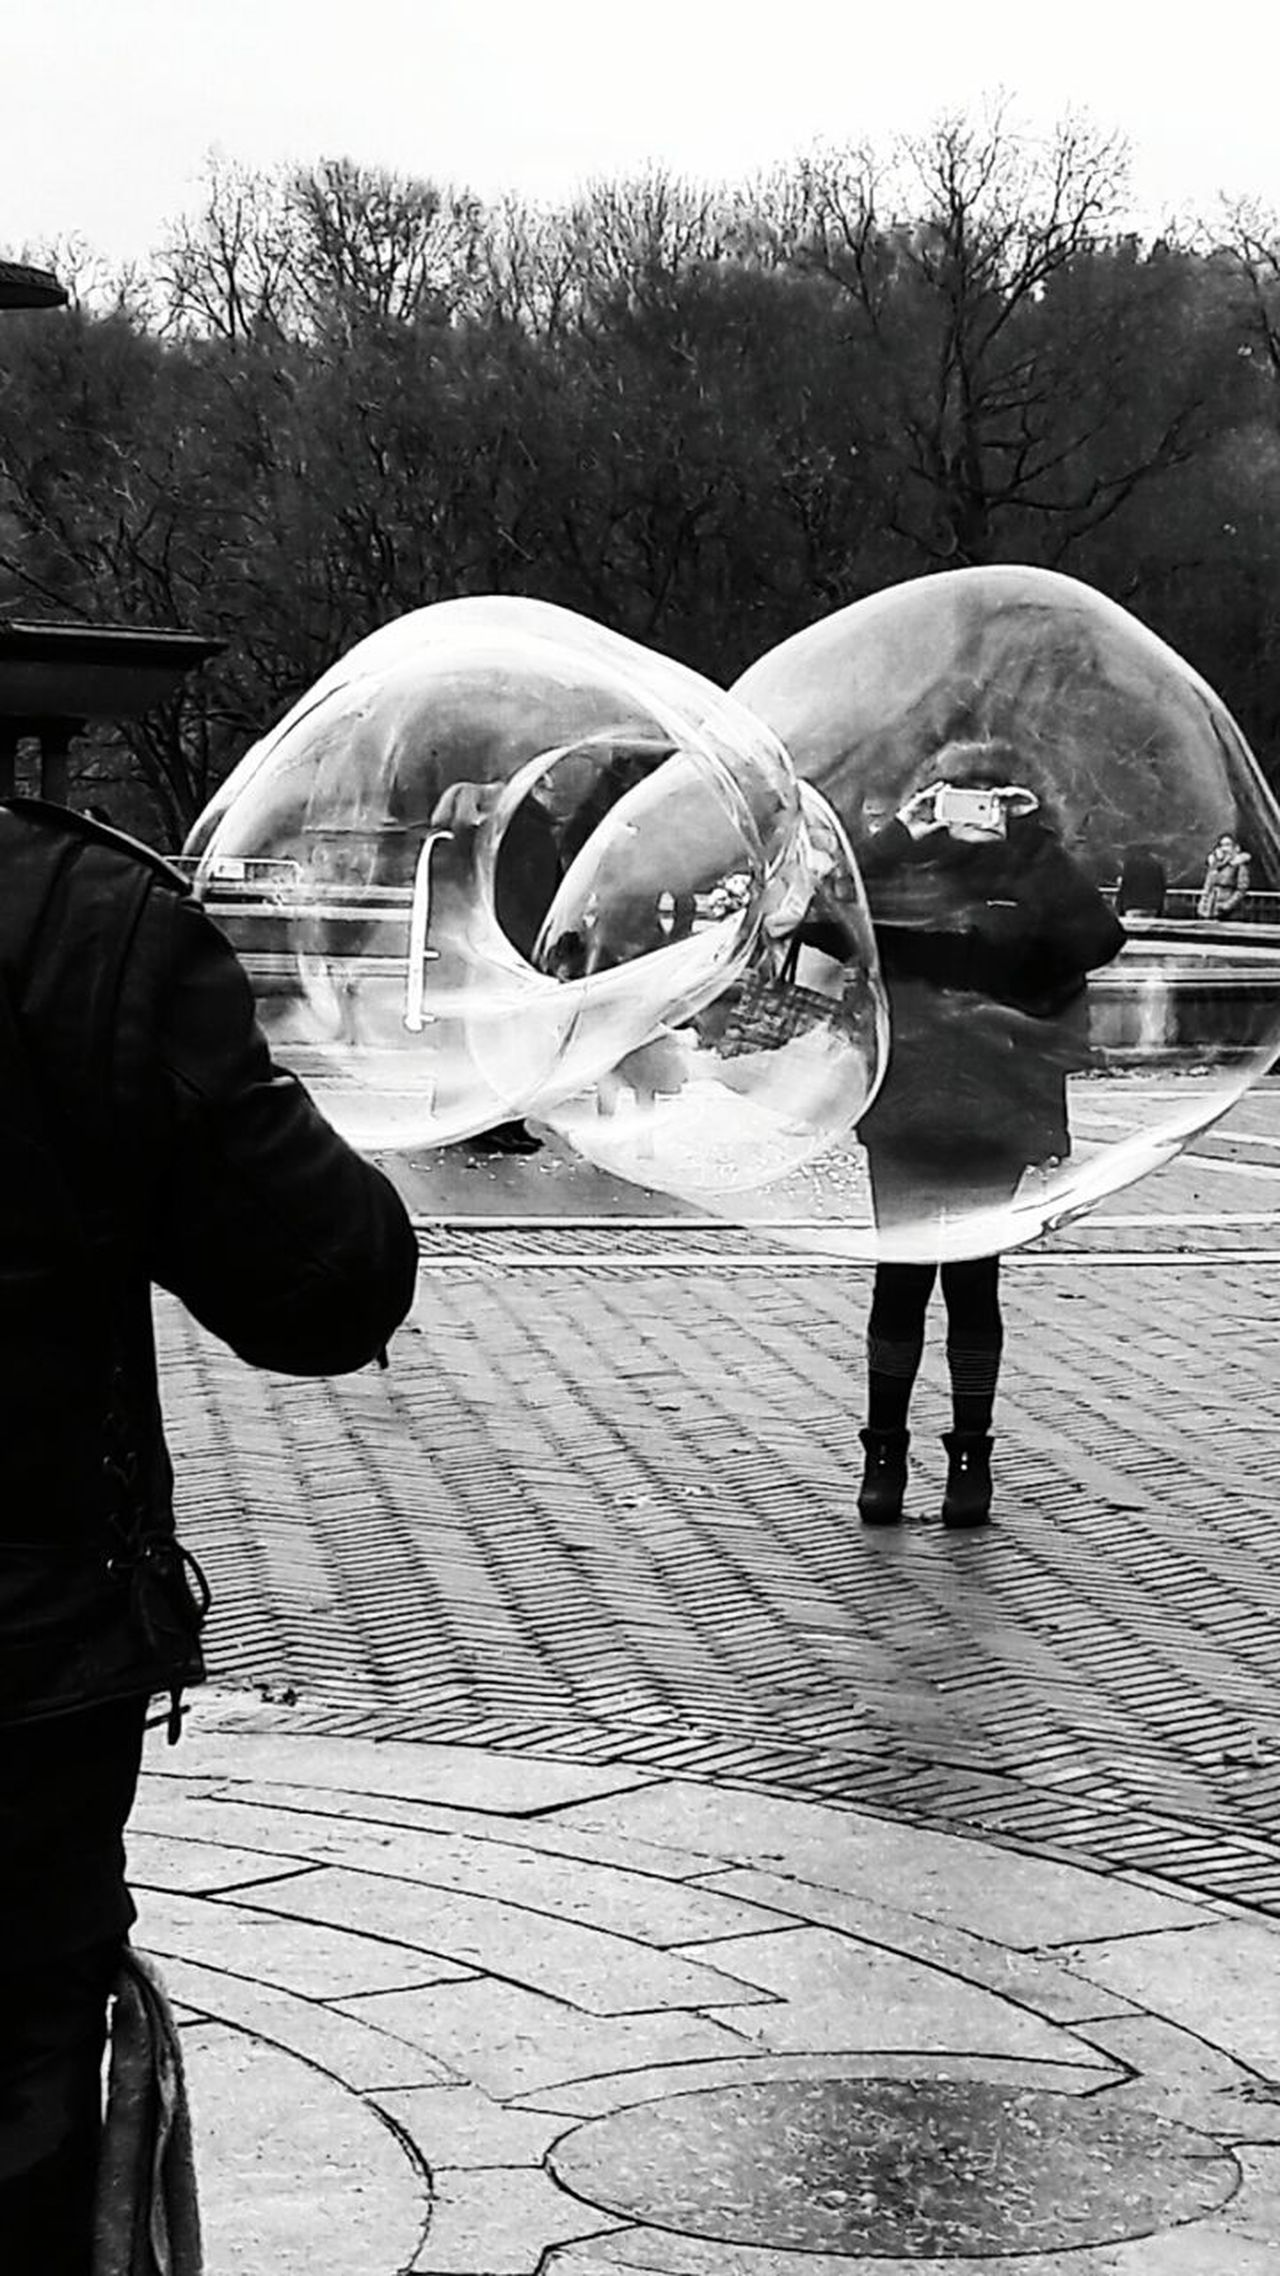 Outdoors People Hello World ✌ Popular Photos Week Of Eyeem Bubbles! Pompas De Jabón Front View Looking At Camera Beautiful Woman Popular